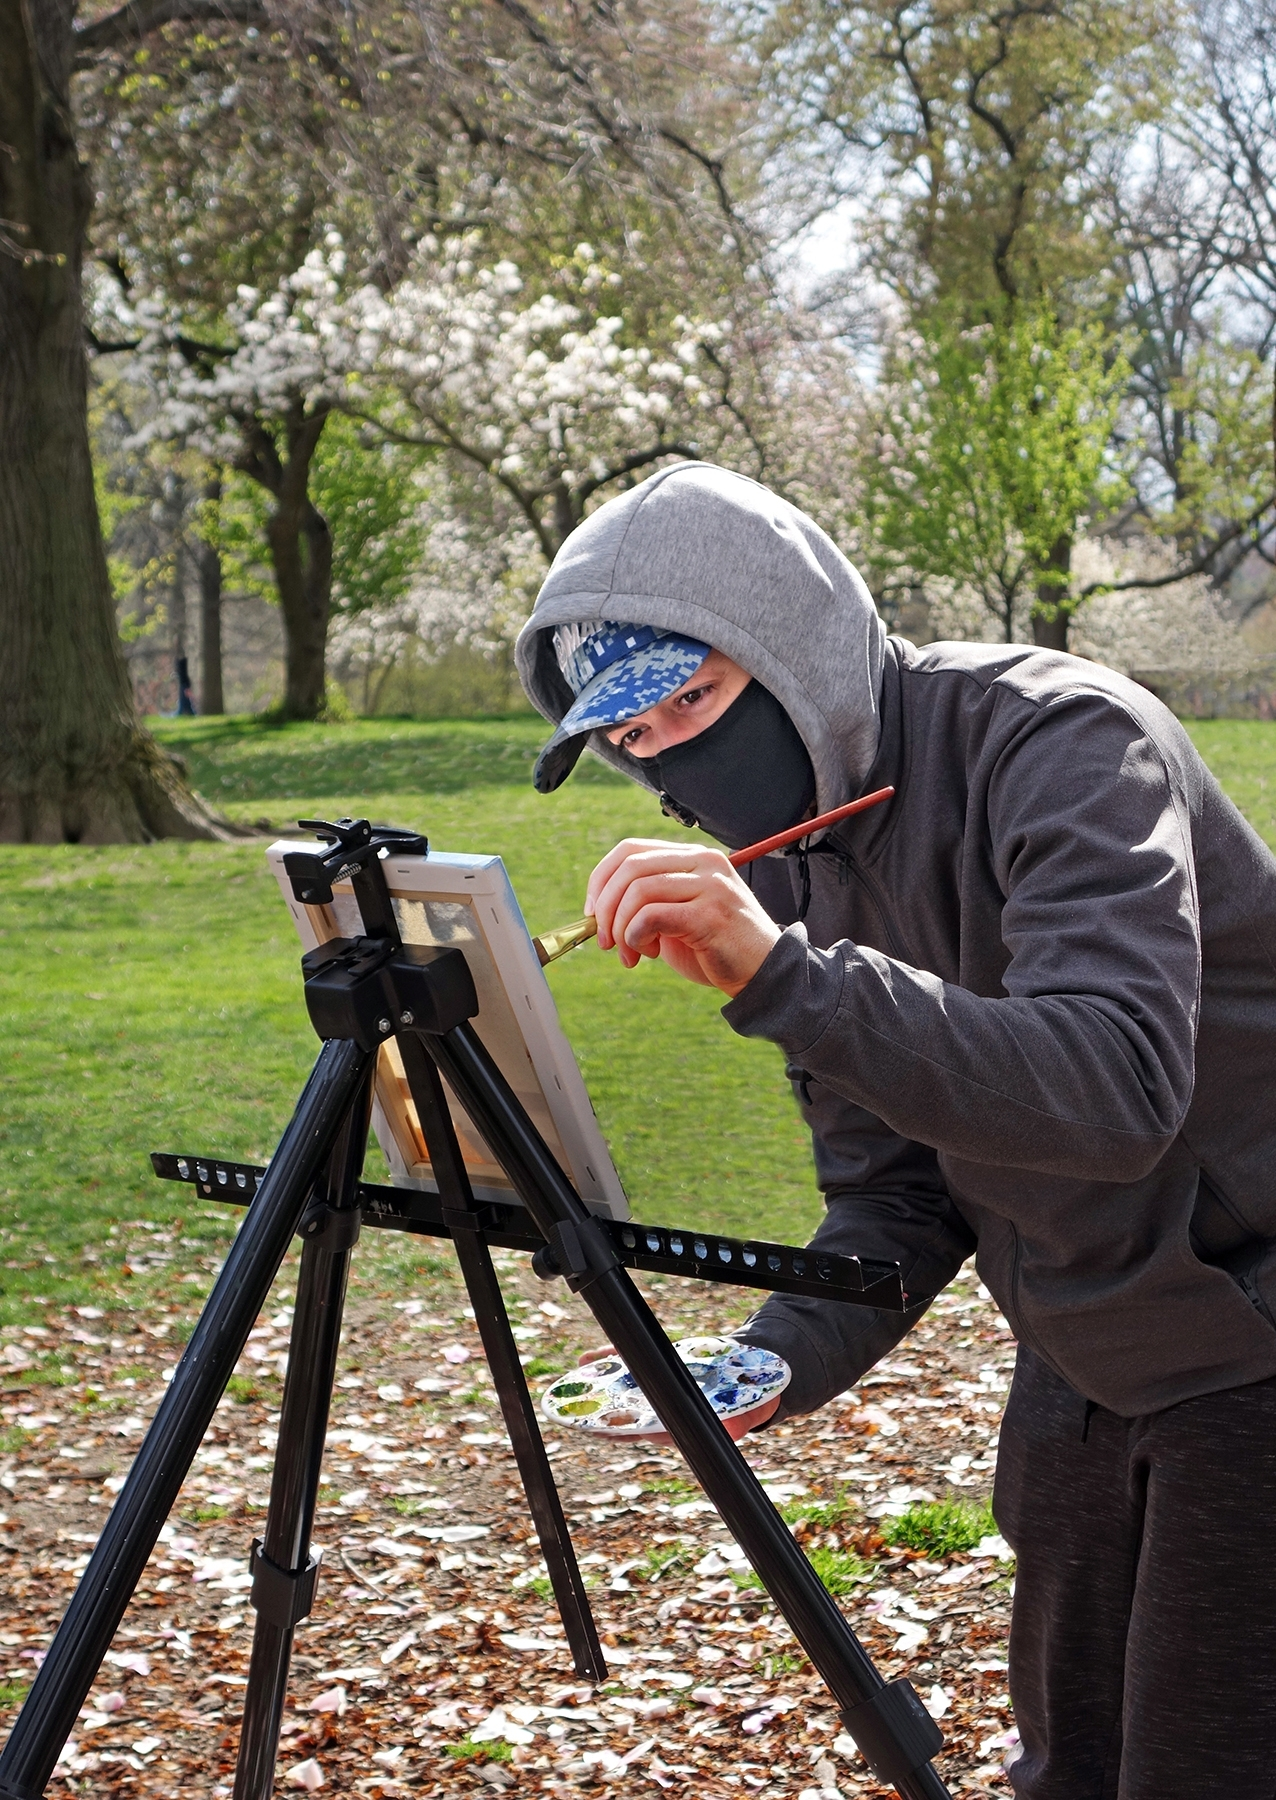 An artist in Central Park, New York, adheres to citywide face-covering policy even in the middle of a traditionally solitary endeavor; photo by Jane Feldman.